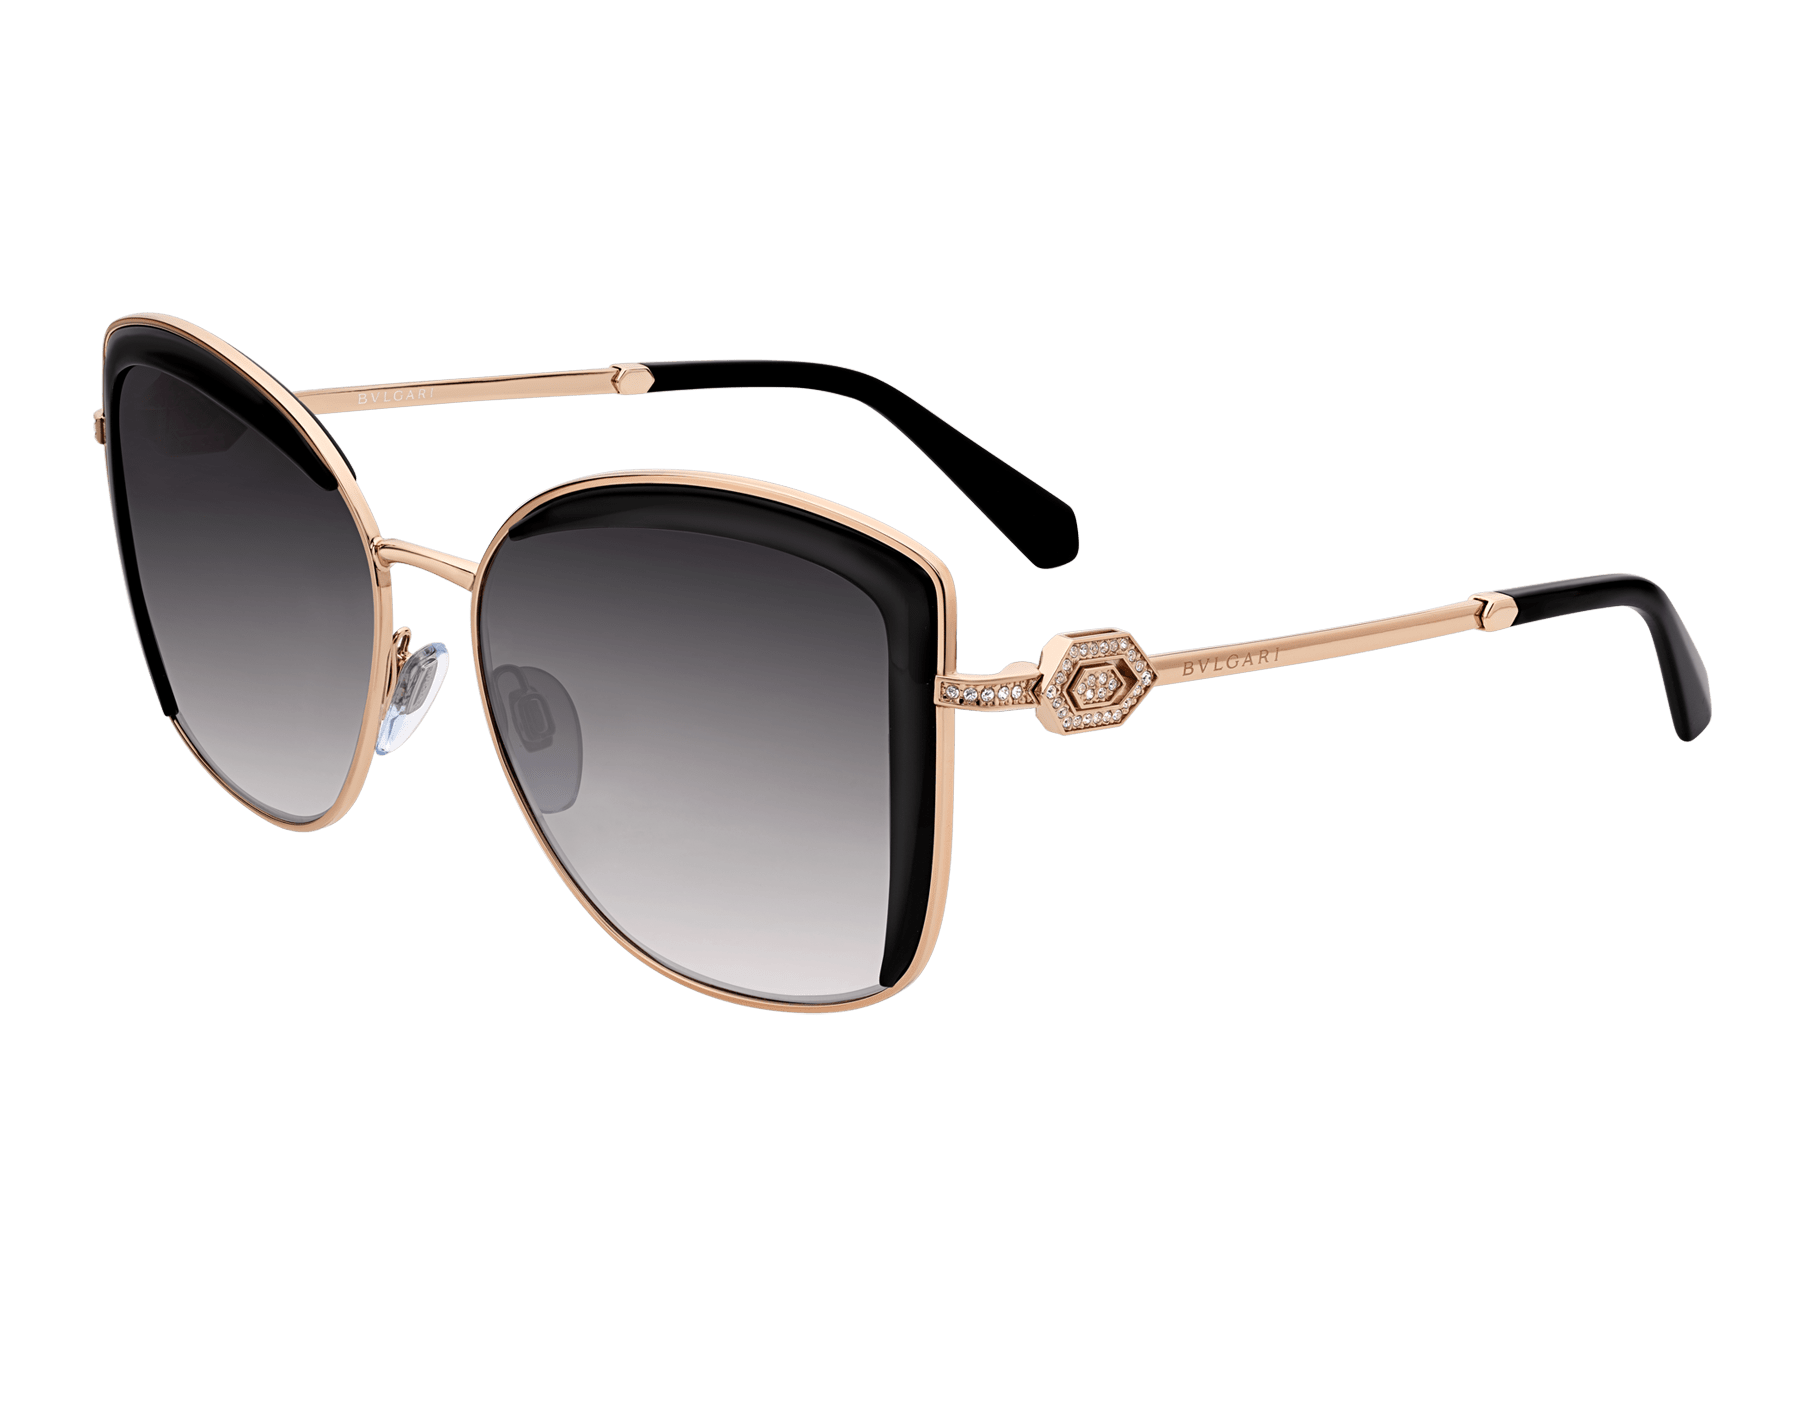 Bulgari Serpenti squared metal sunglasses with Serpenti openwork metal décor with crystals. 903903 image 1